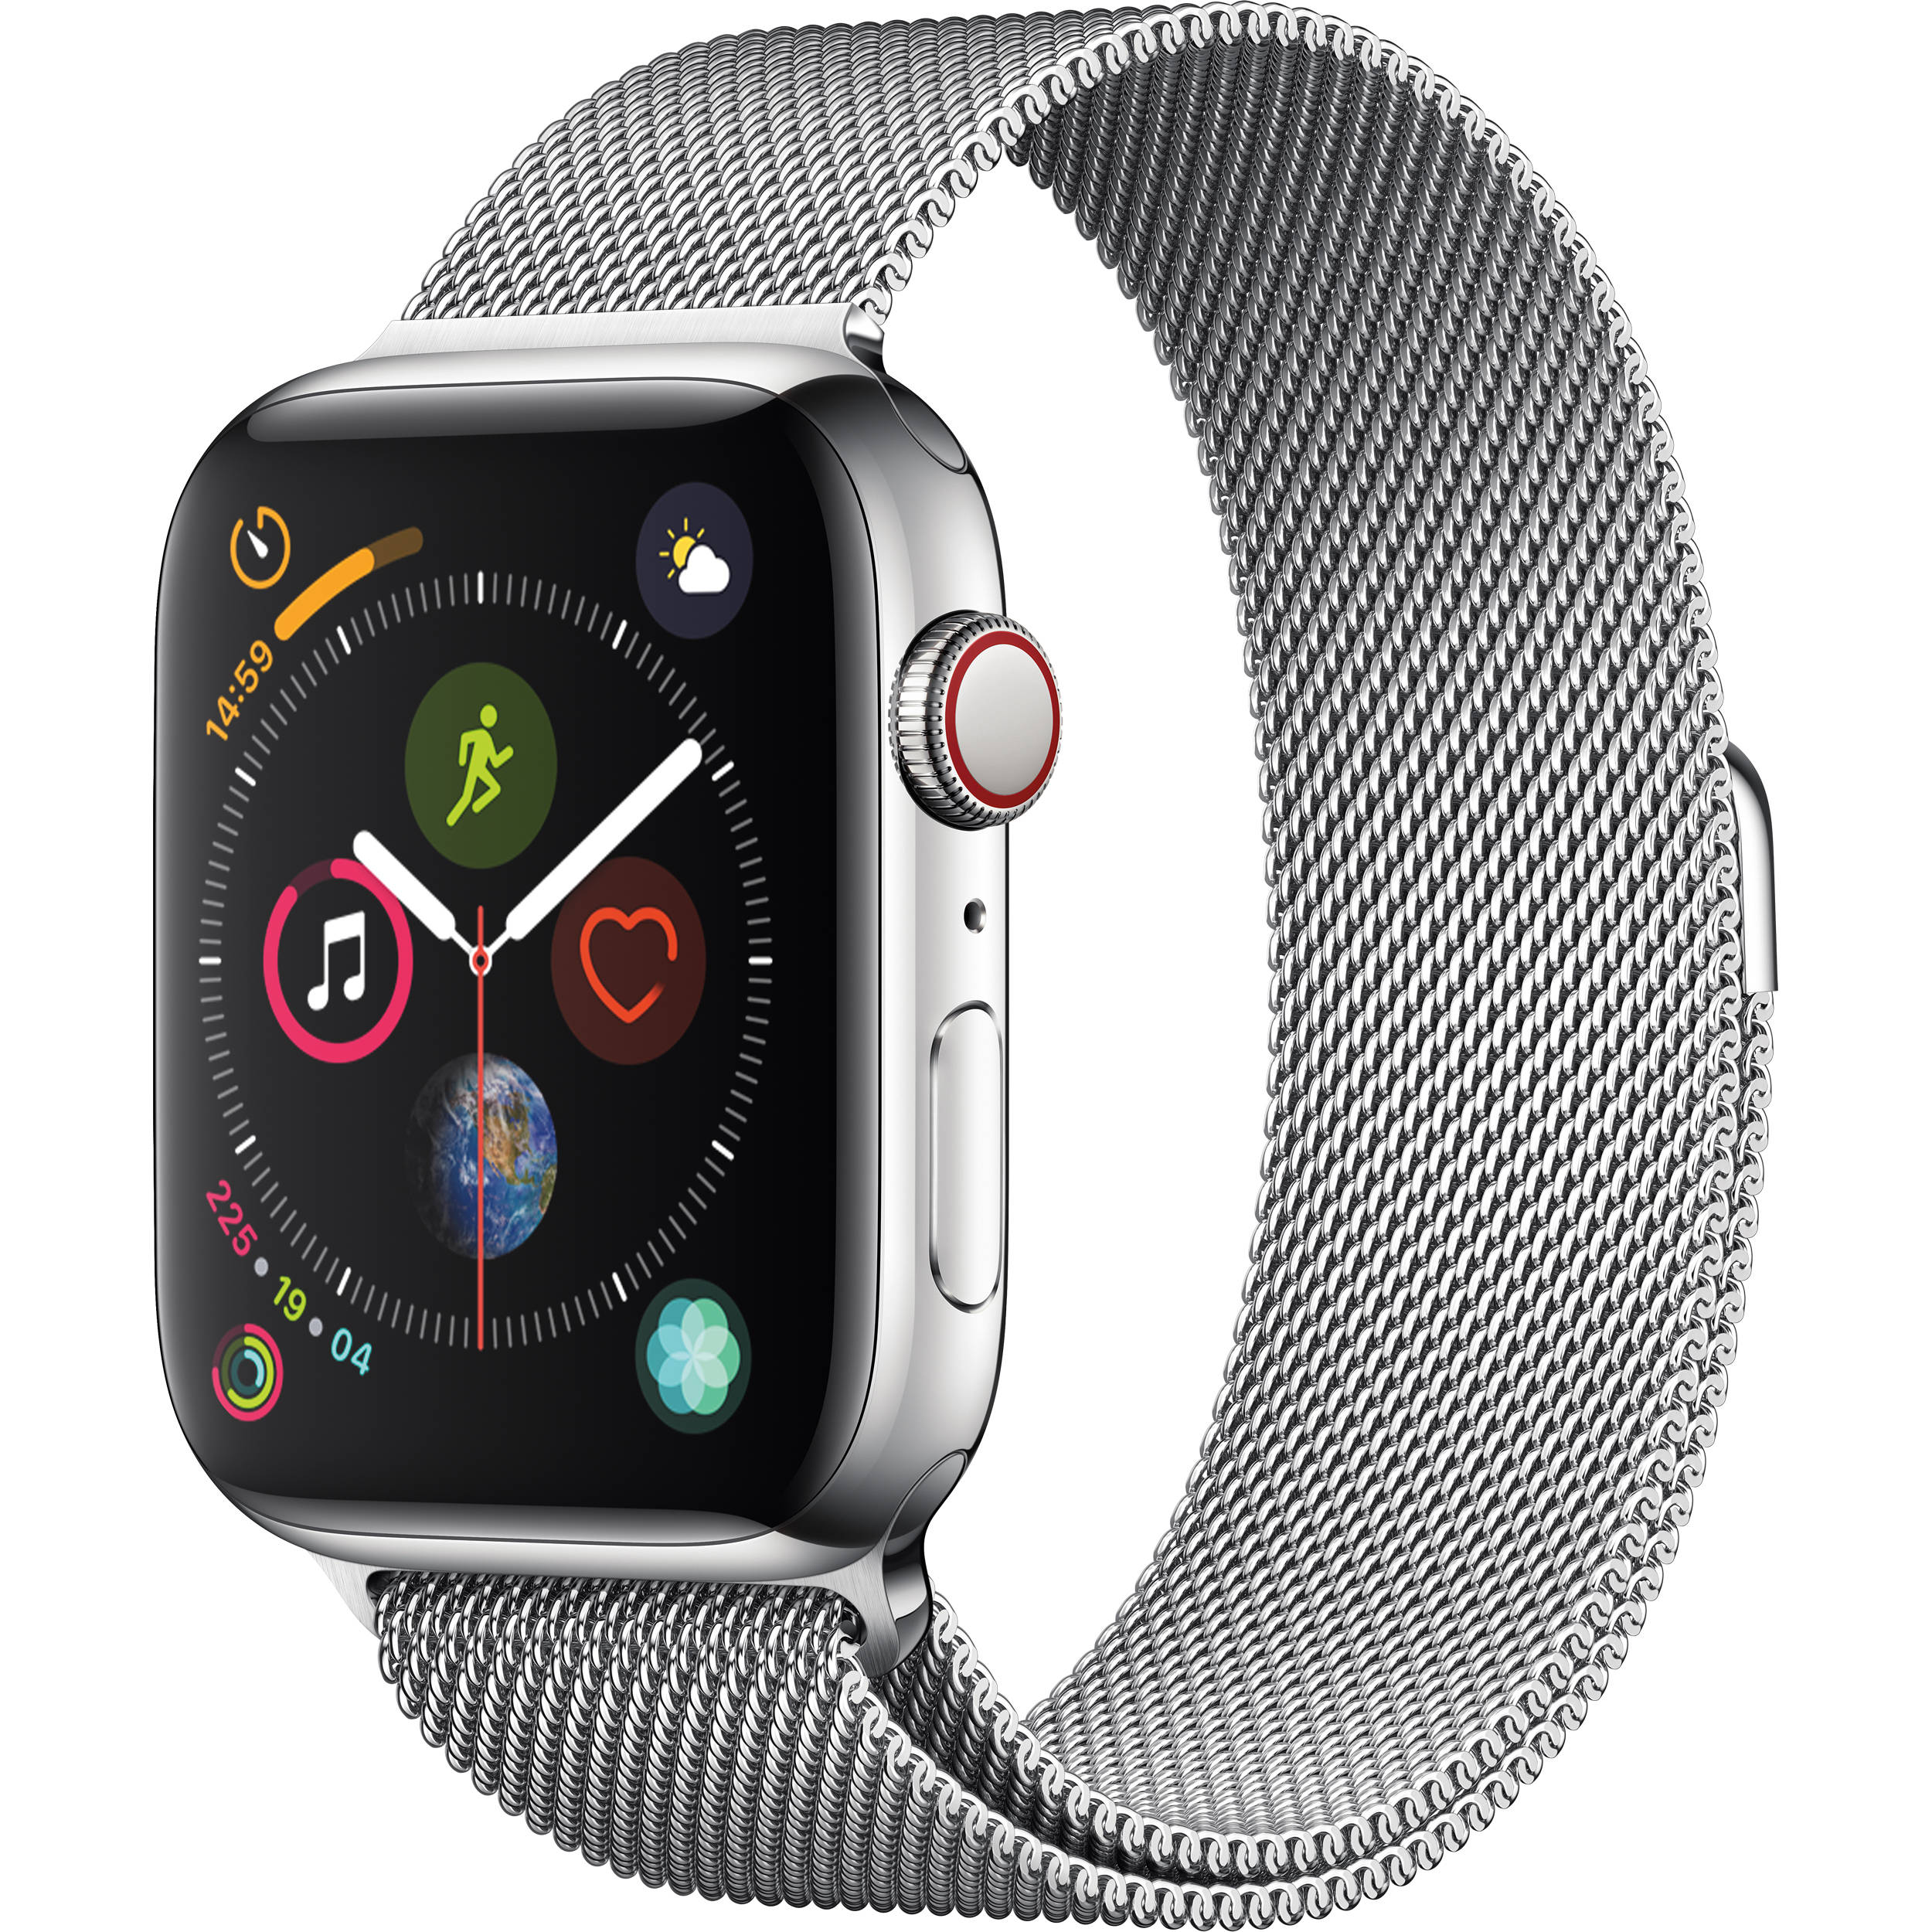 Apple watch 4 cellular vs gps review